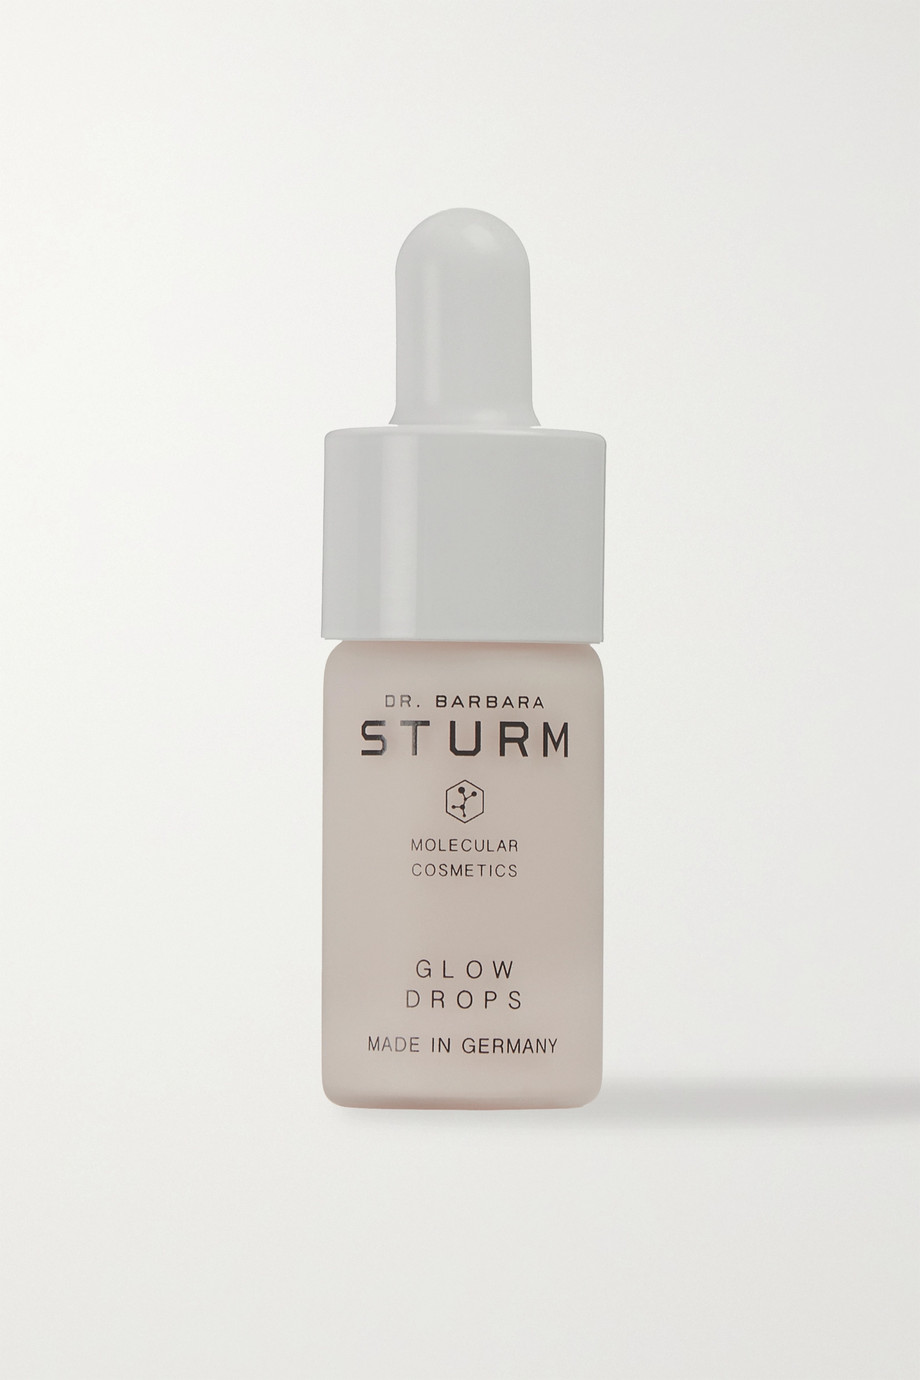 Dr. Barbara Sturm Mini Glow Drops, 10 ml – Serum